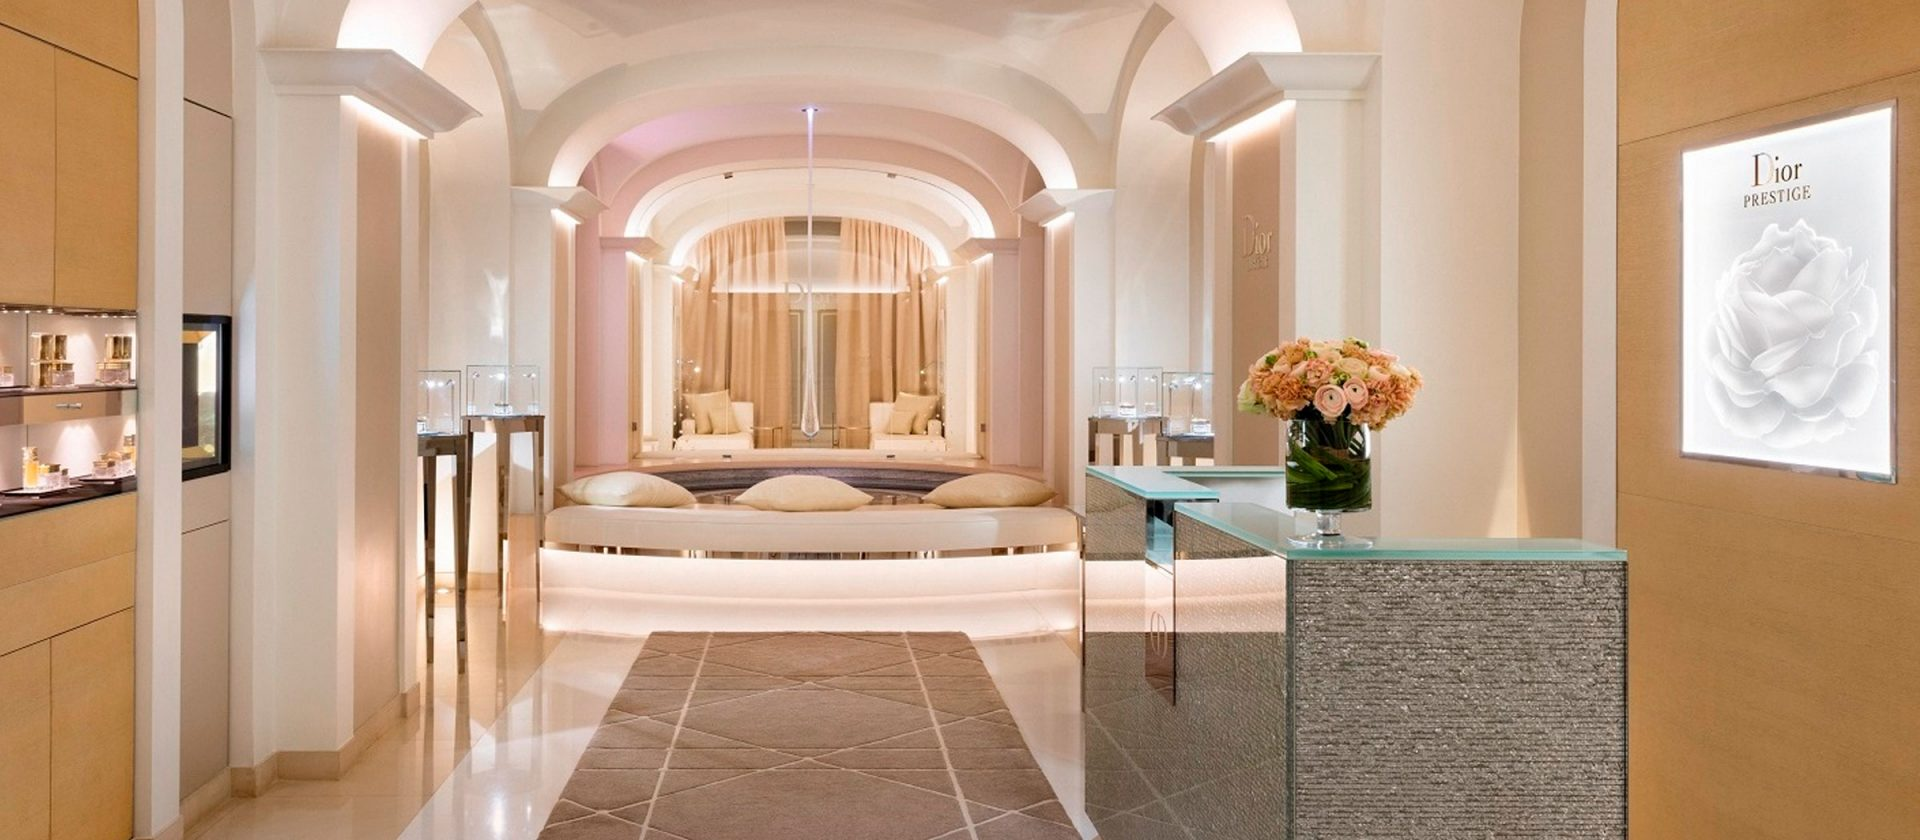 INSTITUT DIOR, HOTEL PLAZA ATHÉNÉE - All Luxury Apartments